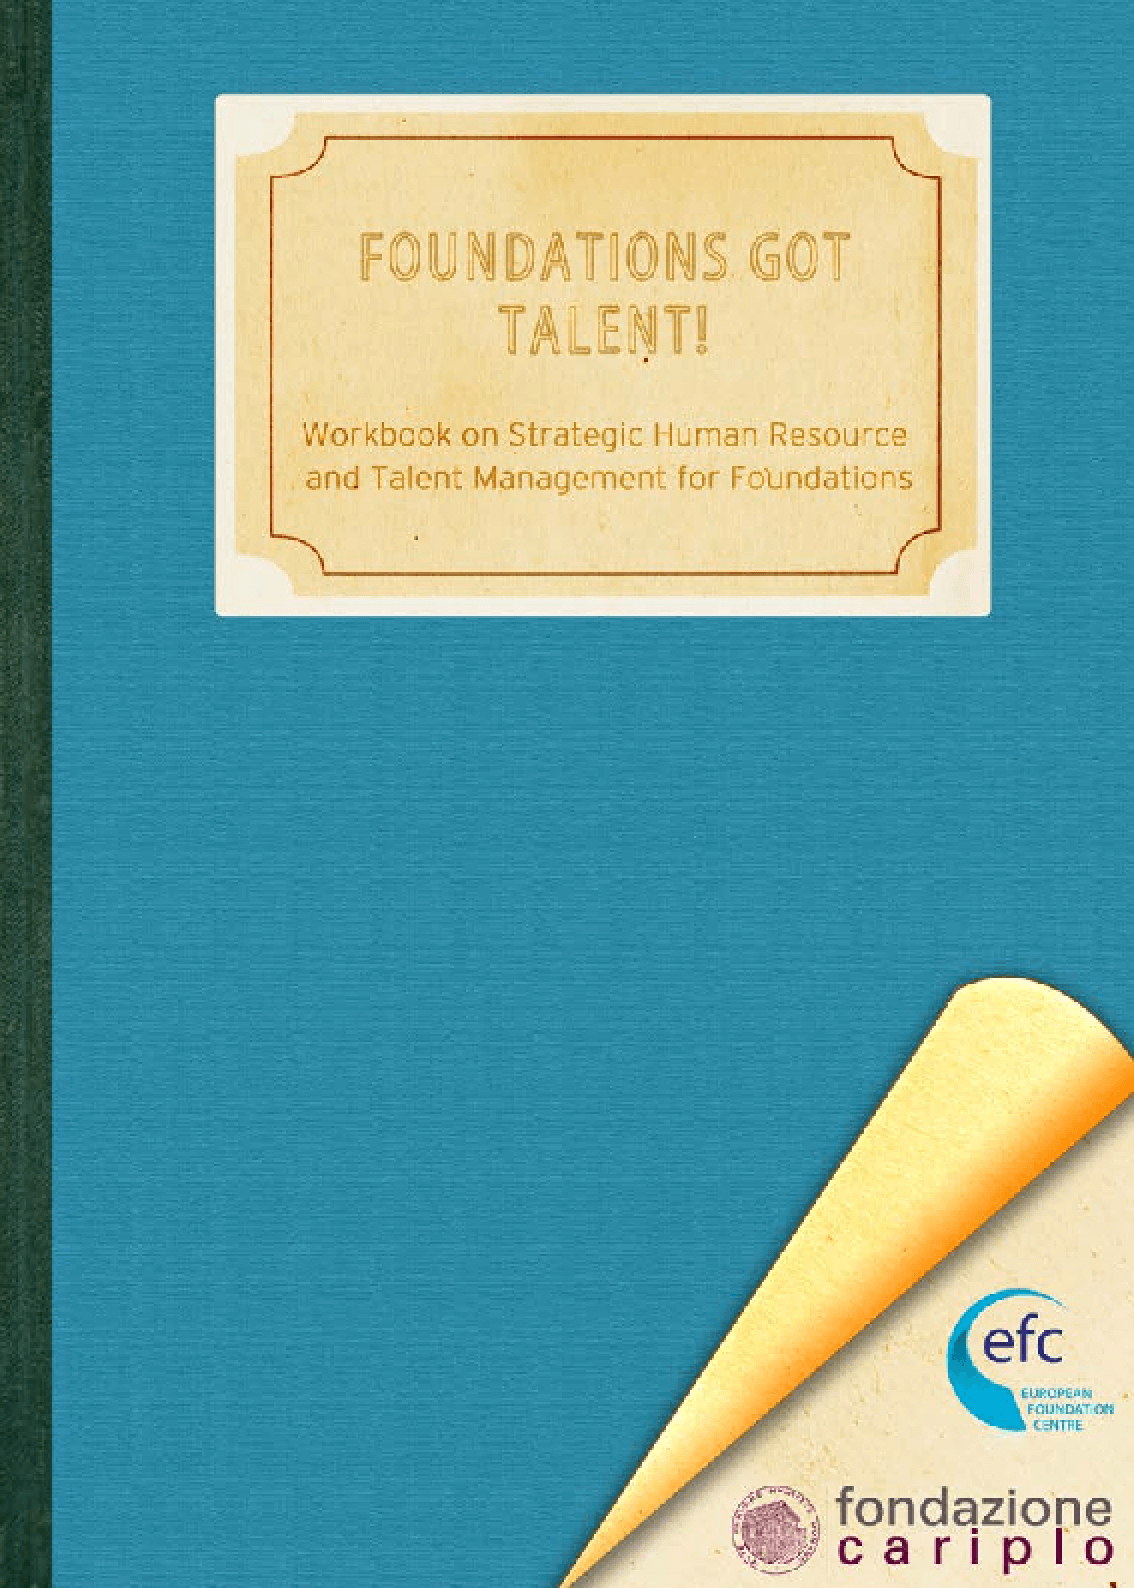 Foundations Got Talent! Workbook on Strategic Human Resource and Talent Management for Foundations